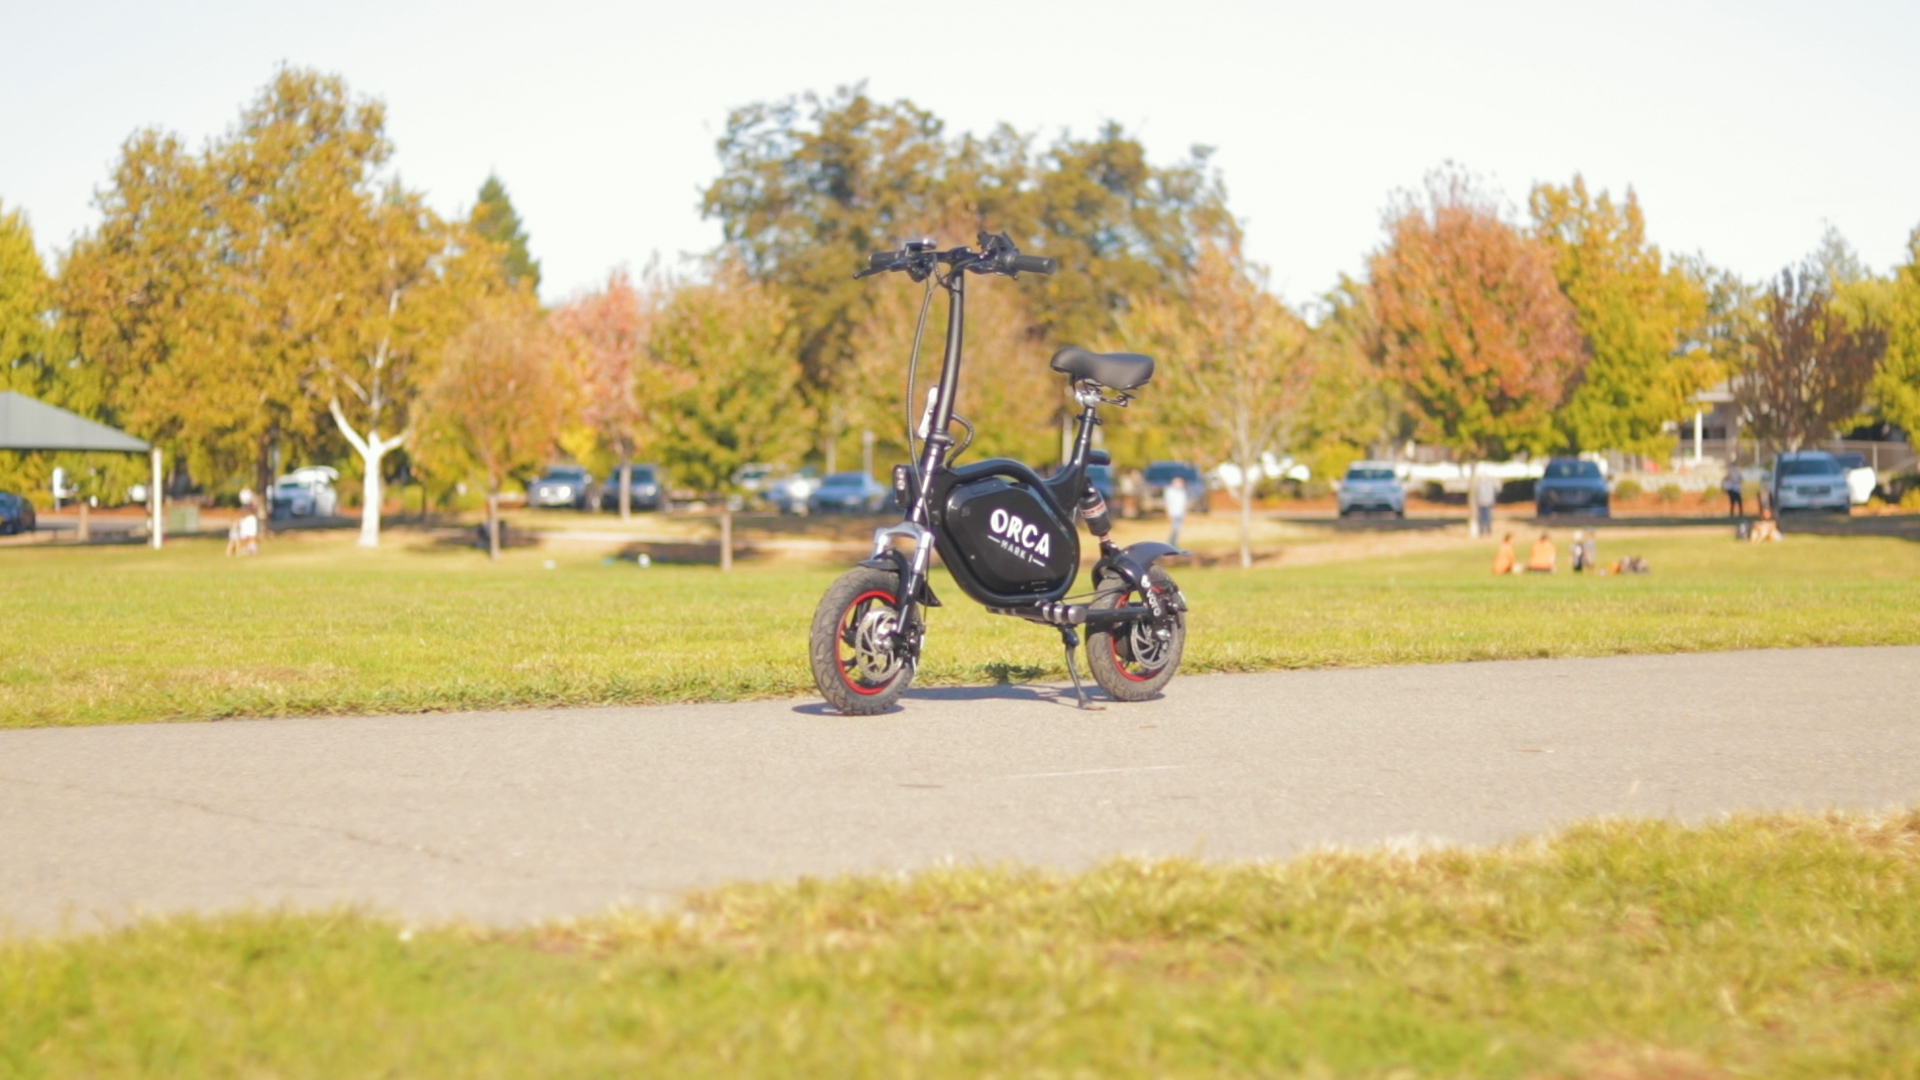 voro-motors-orca-mark-1-electric-scooter-review-2019-profile-2.jpg